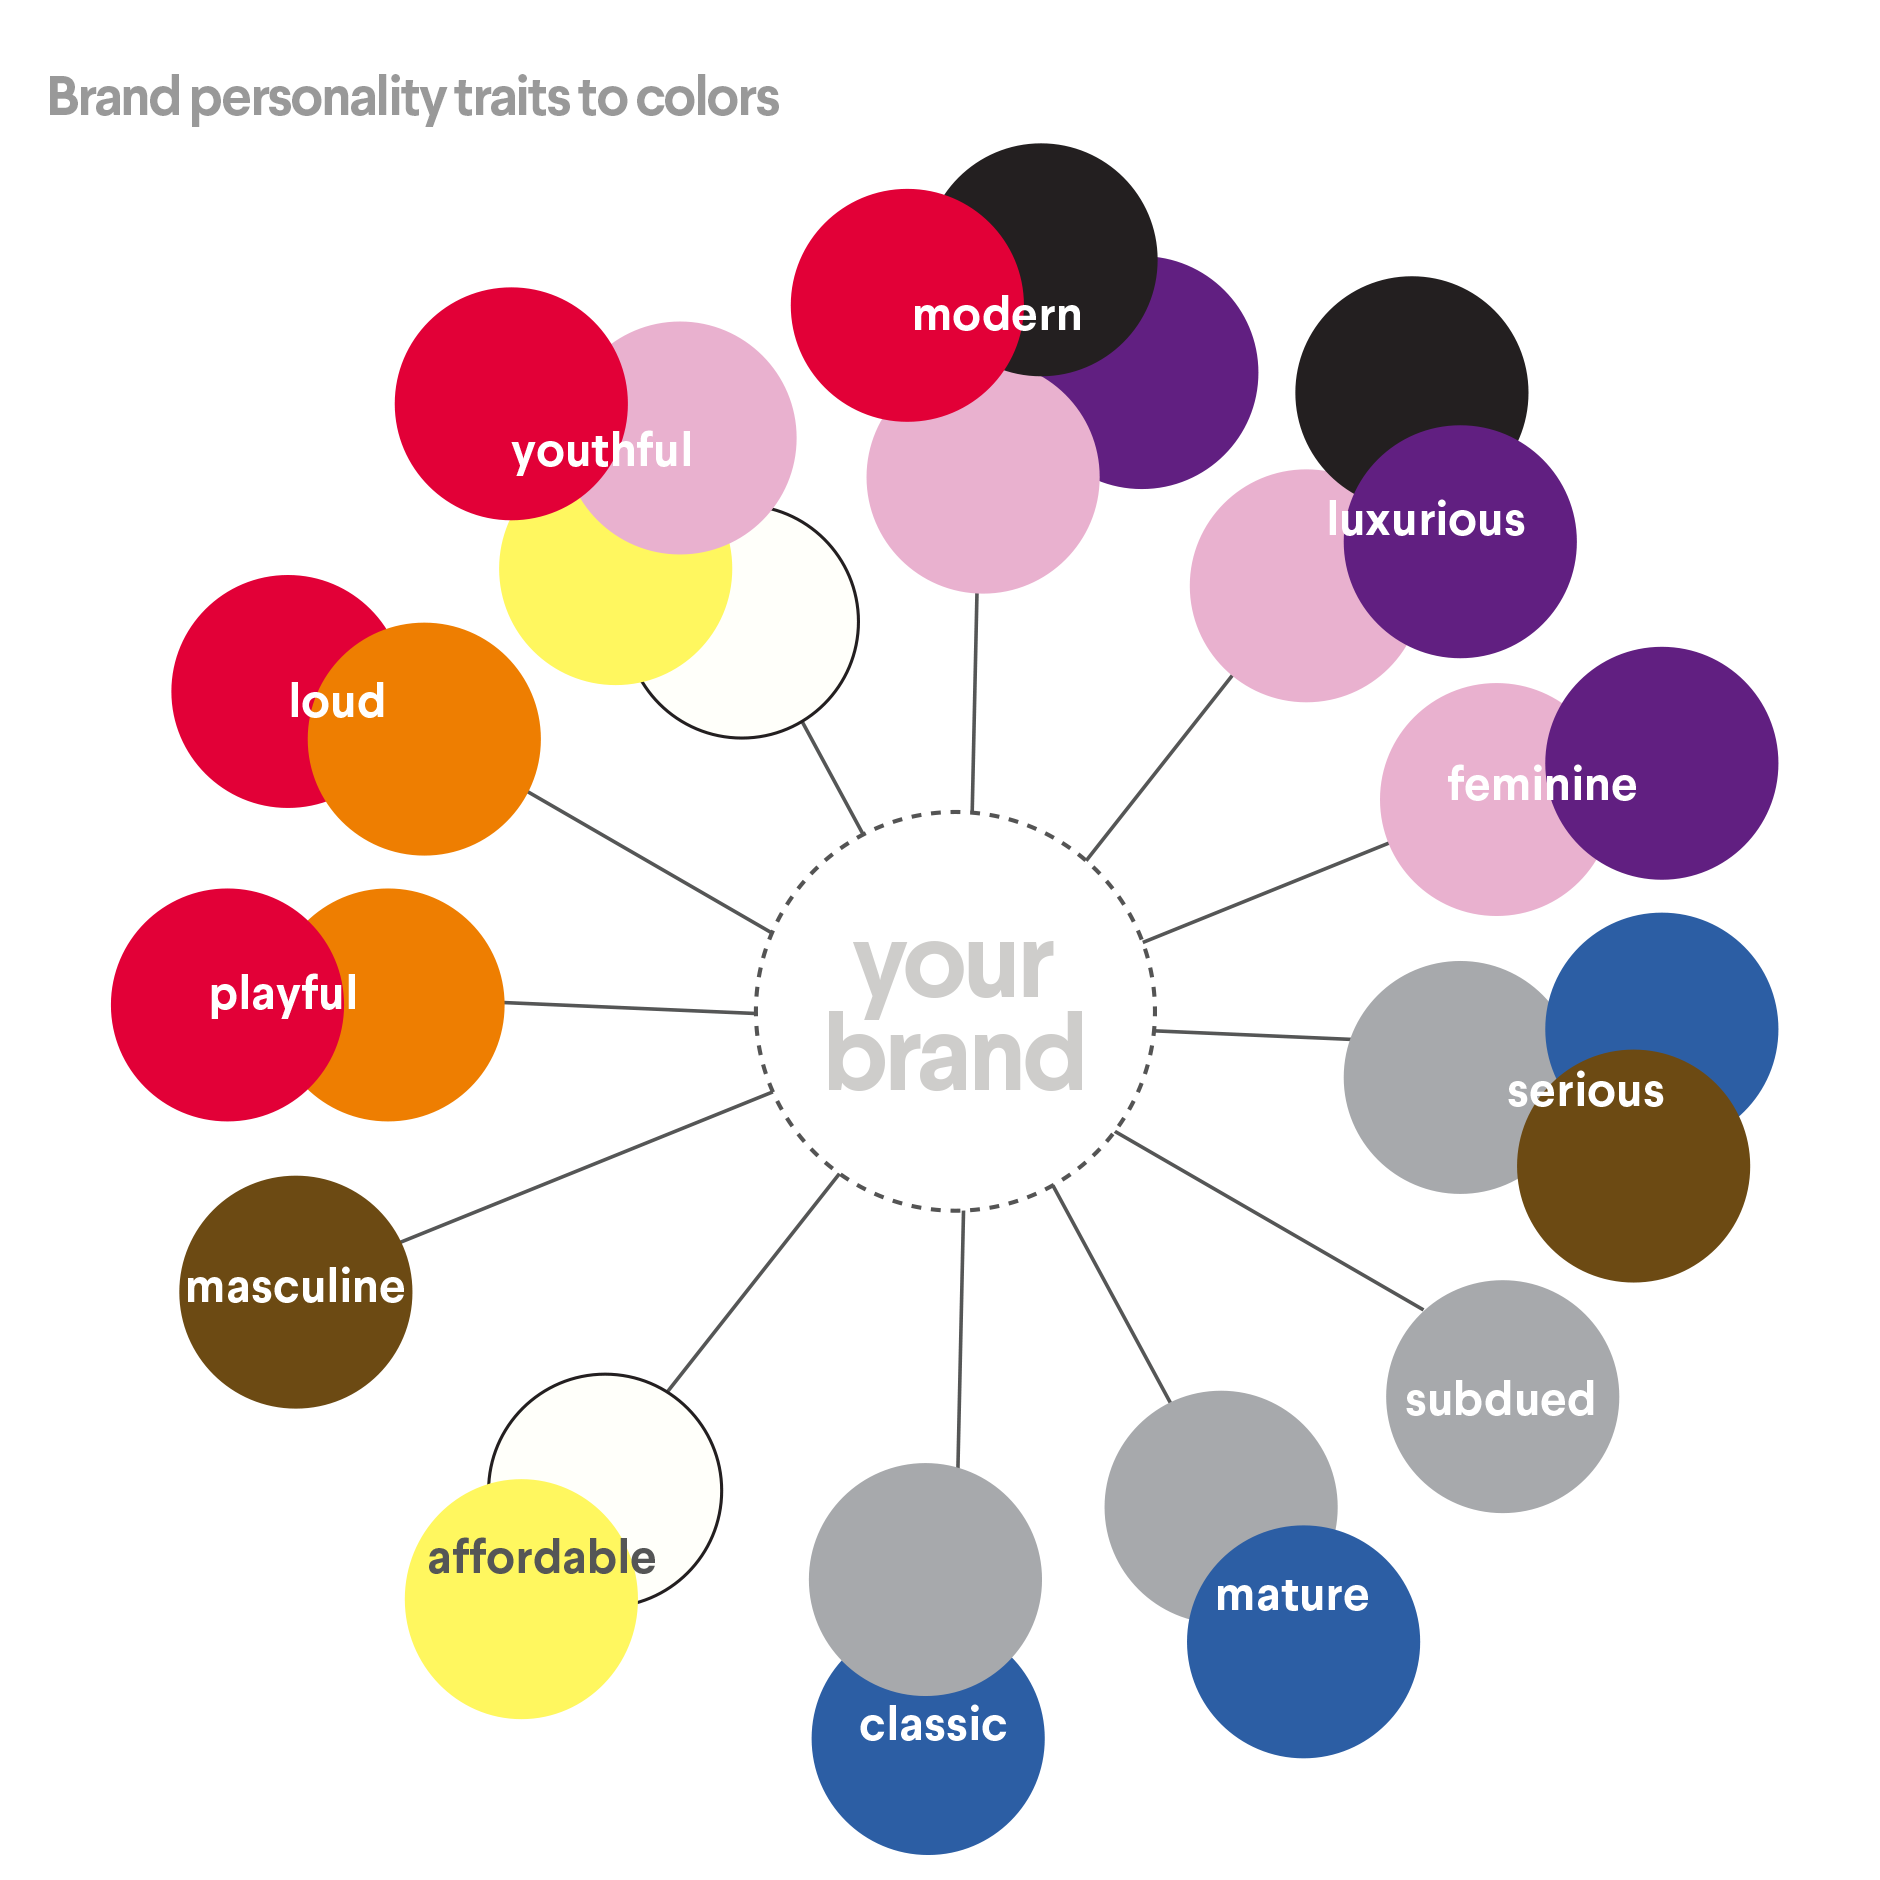 Brand personality traits by color